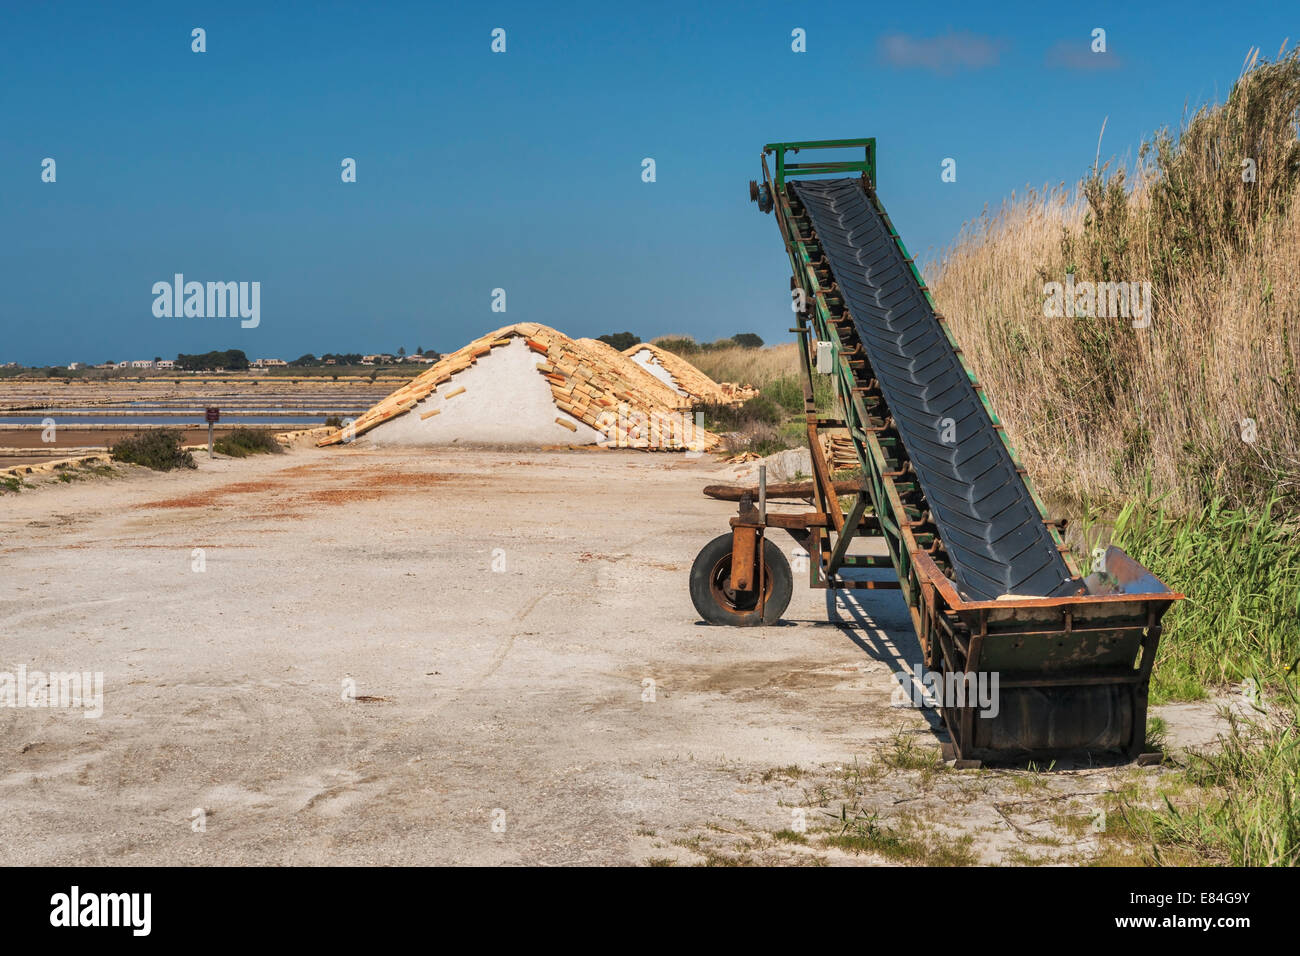 Conveyor belt and salt hill in a saltern, Murana, Trapani, Sicily, Italy, Europe - Stock Image